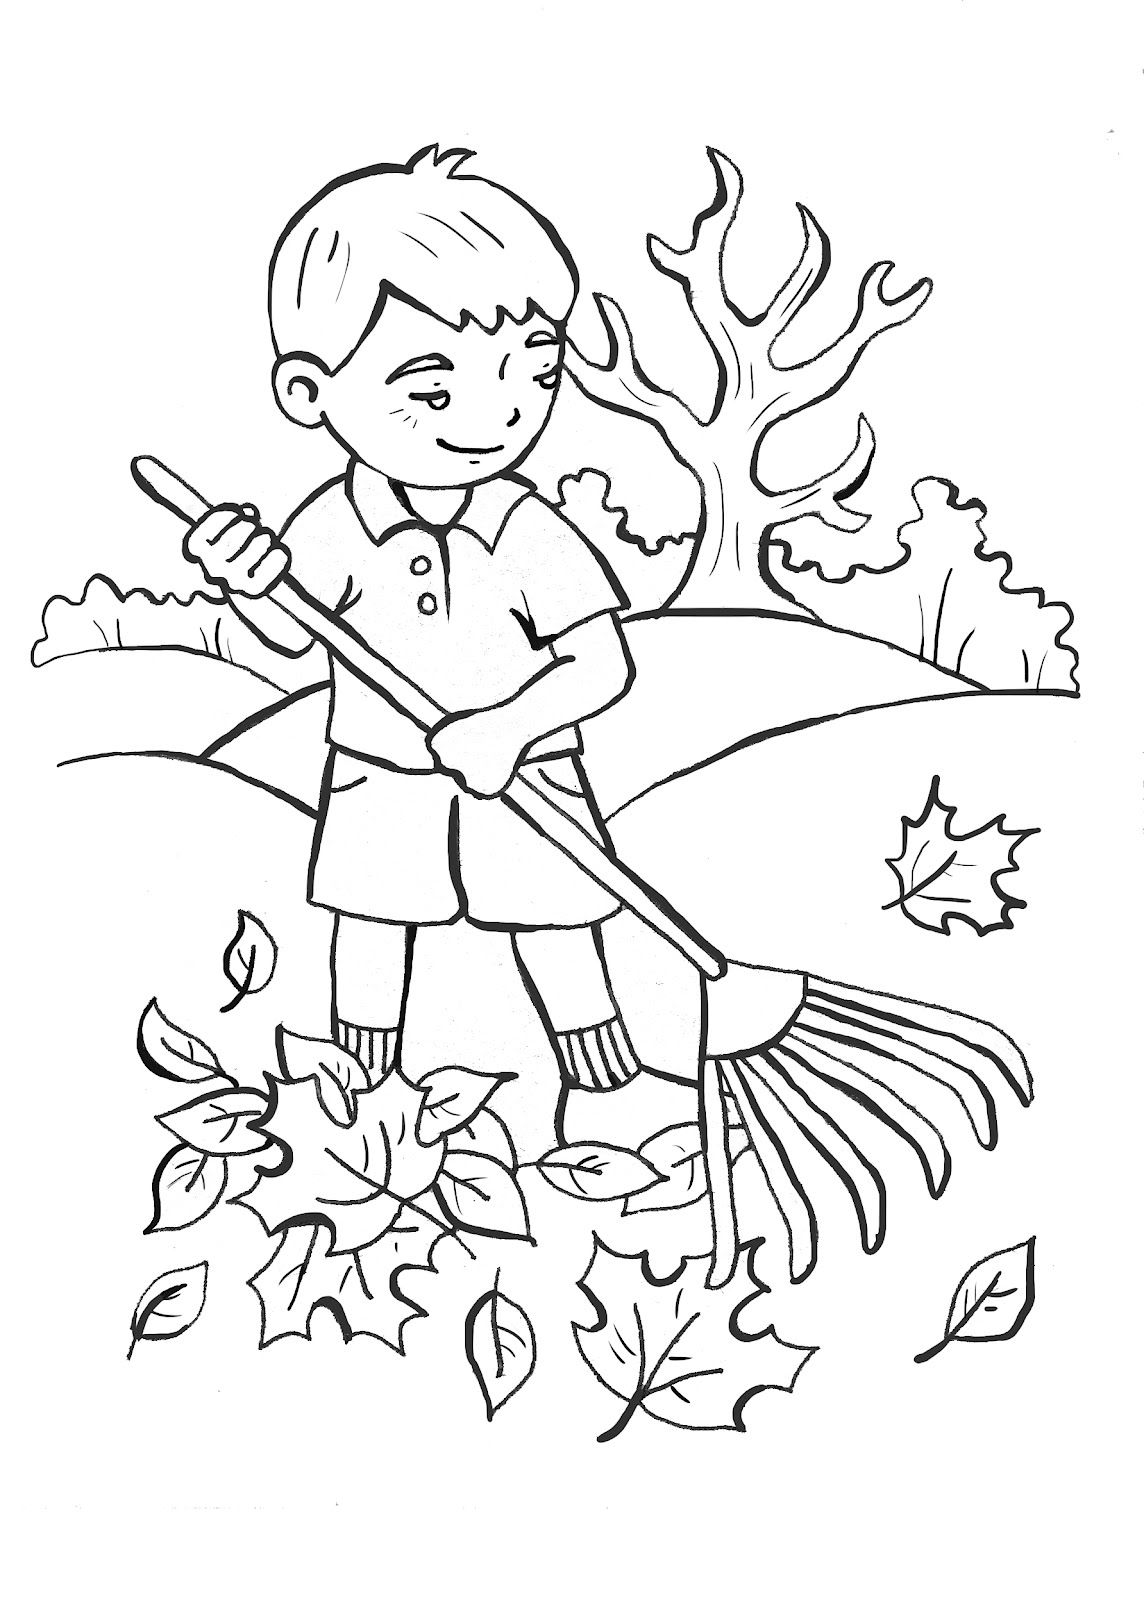 Old Fashioned image intended for lds printable coloring pages